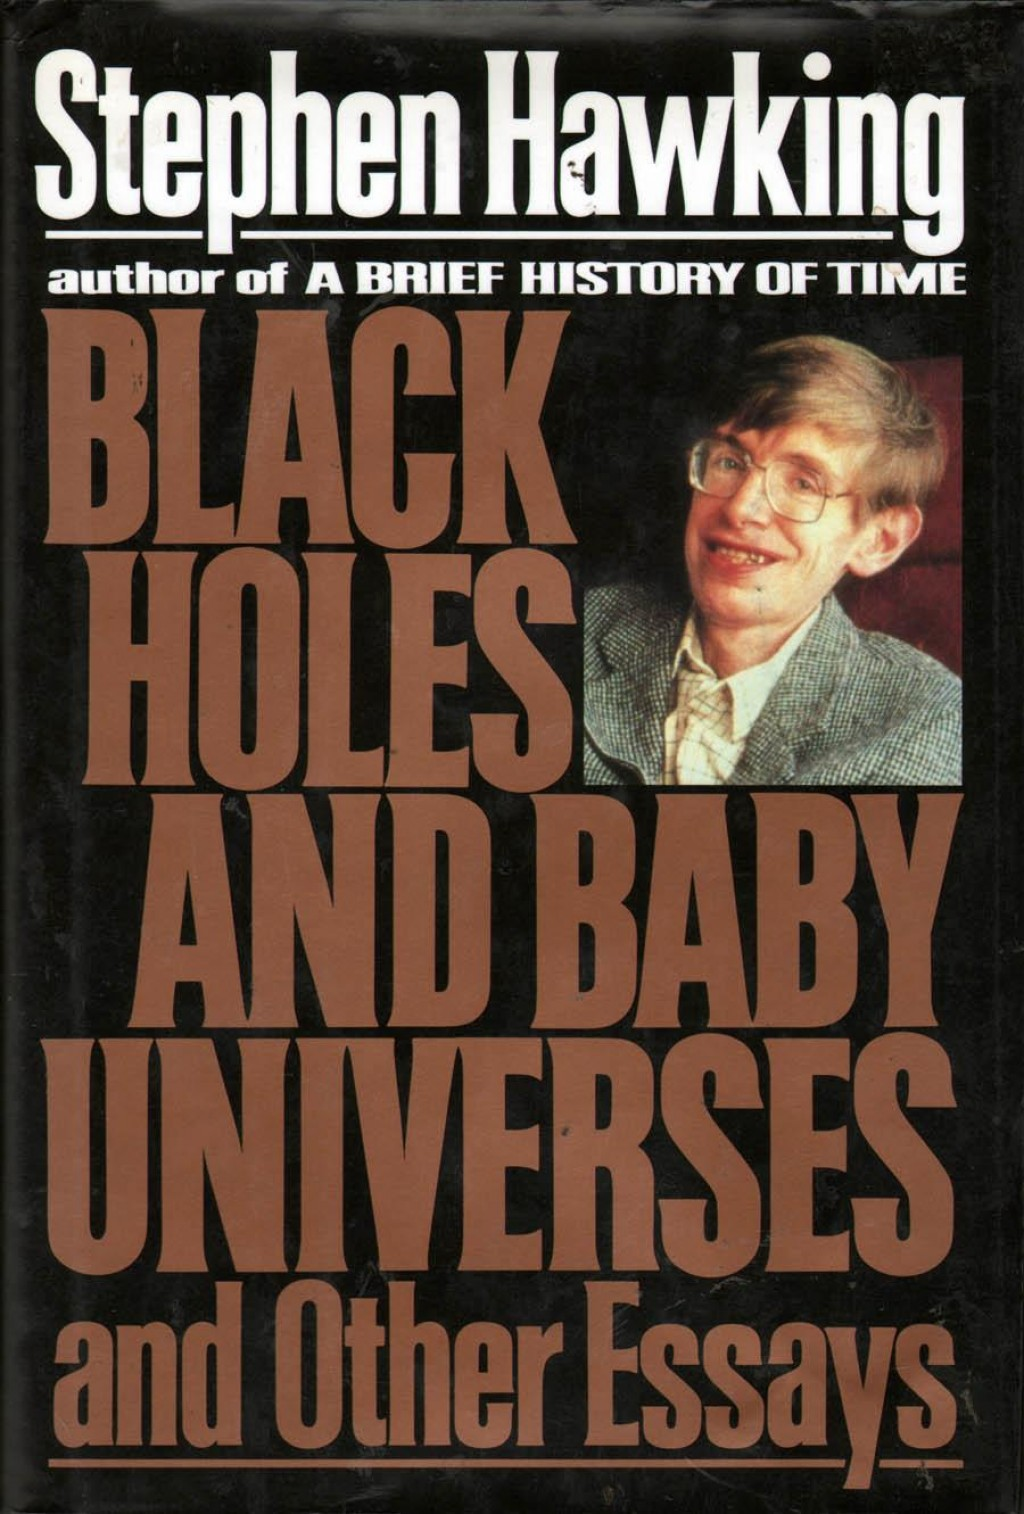 004 Essay Example Black Holes And Baby Universes Other Unique Essays Review Ebook Free Download Amazon Large